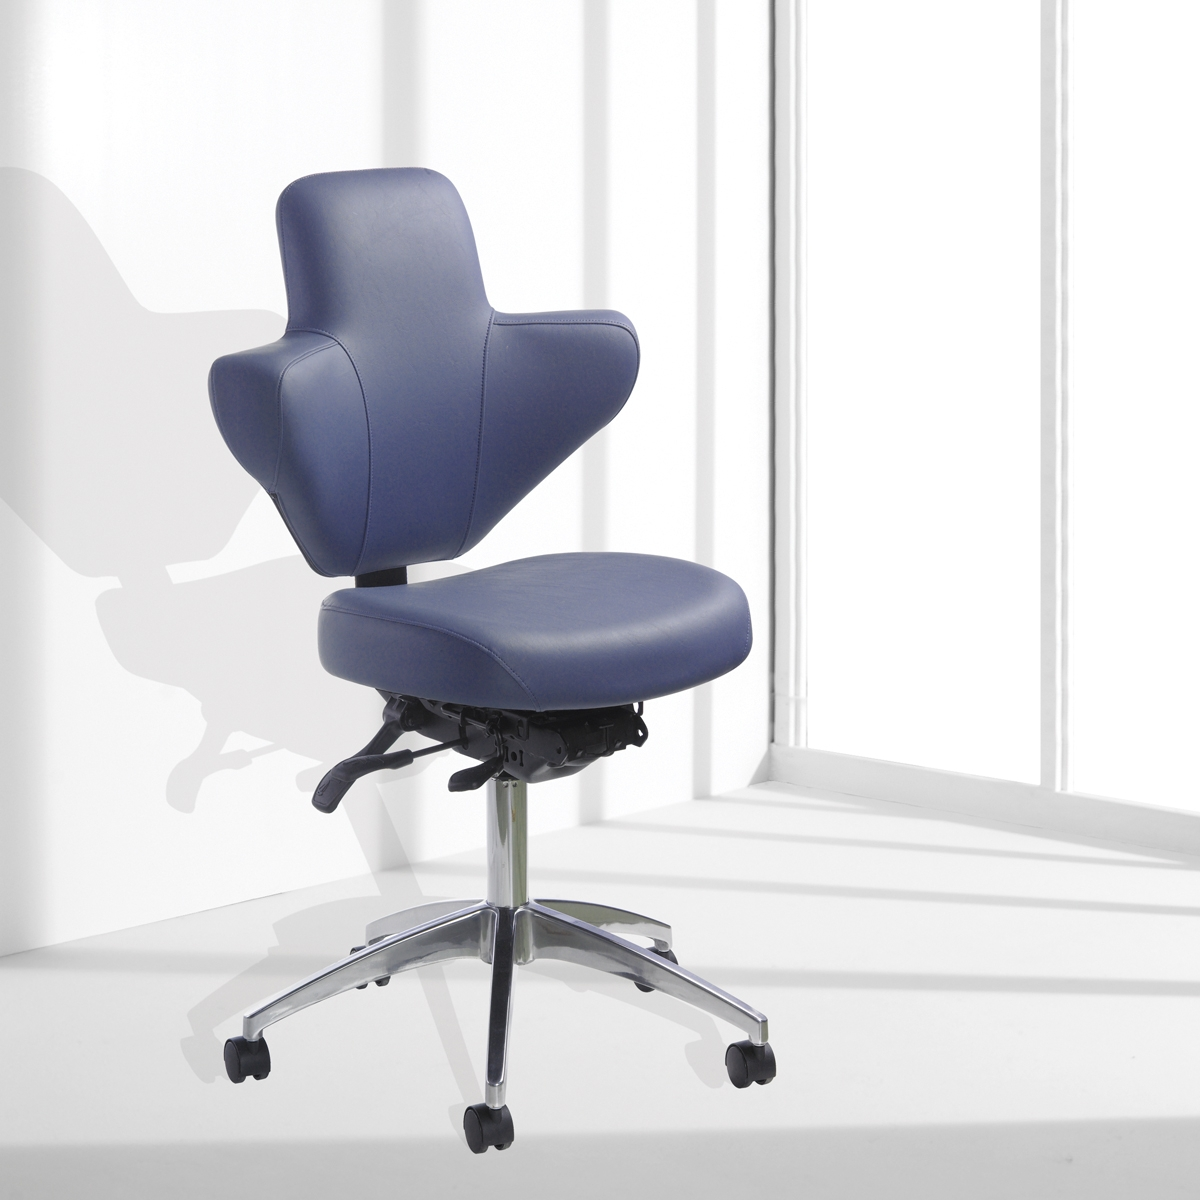 Surgeon Console Nightingale Chairs